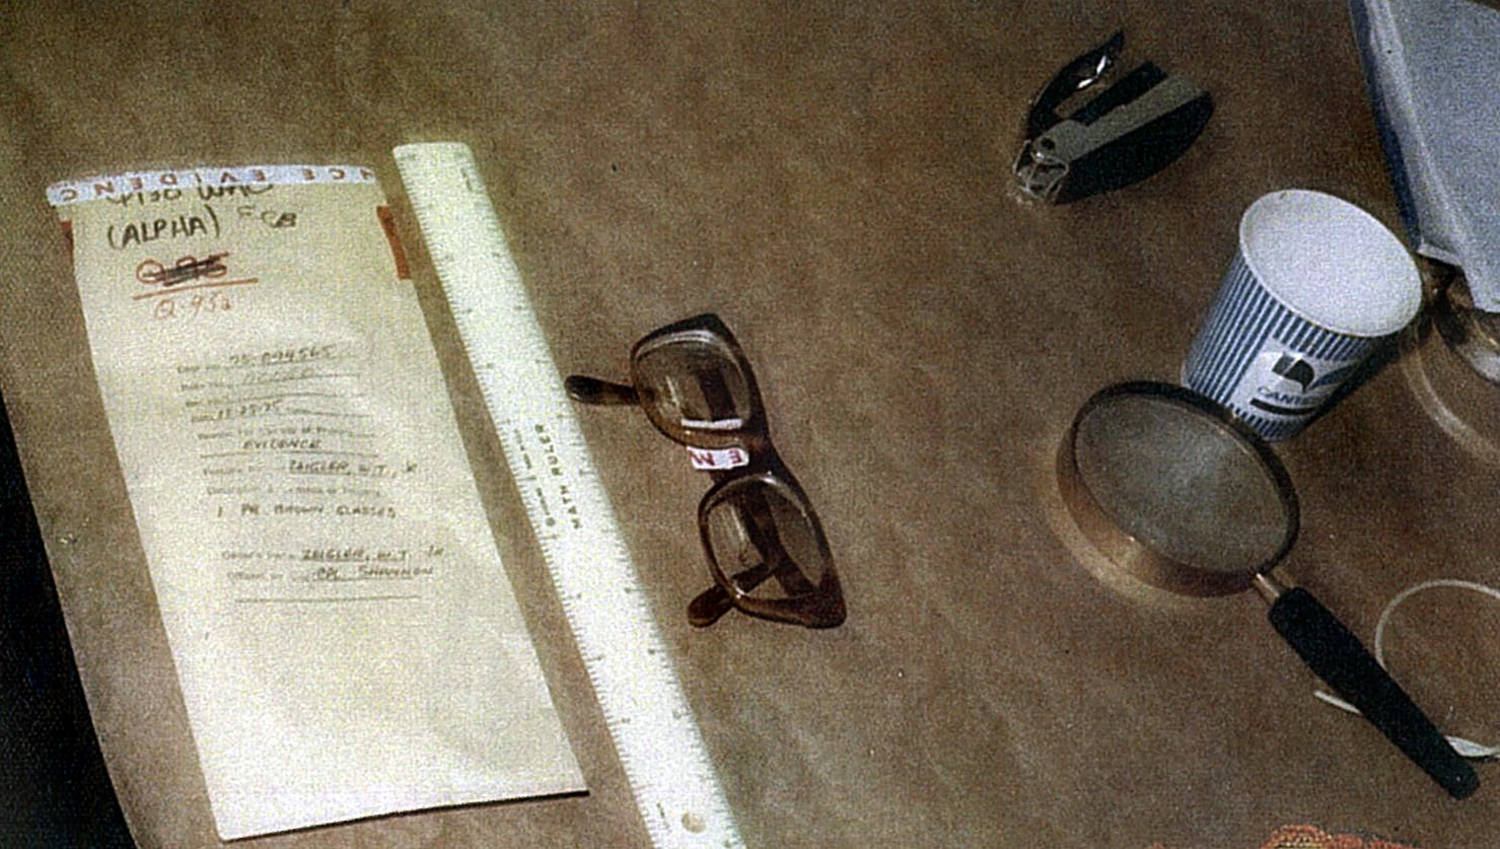 Evidence photo of a pair of glasses, with a ruler alongside for comparison.